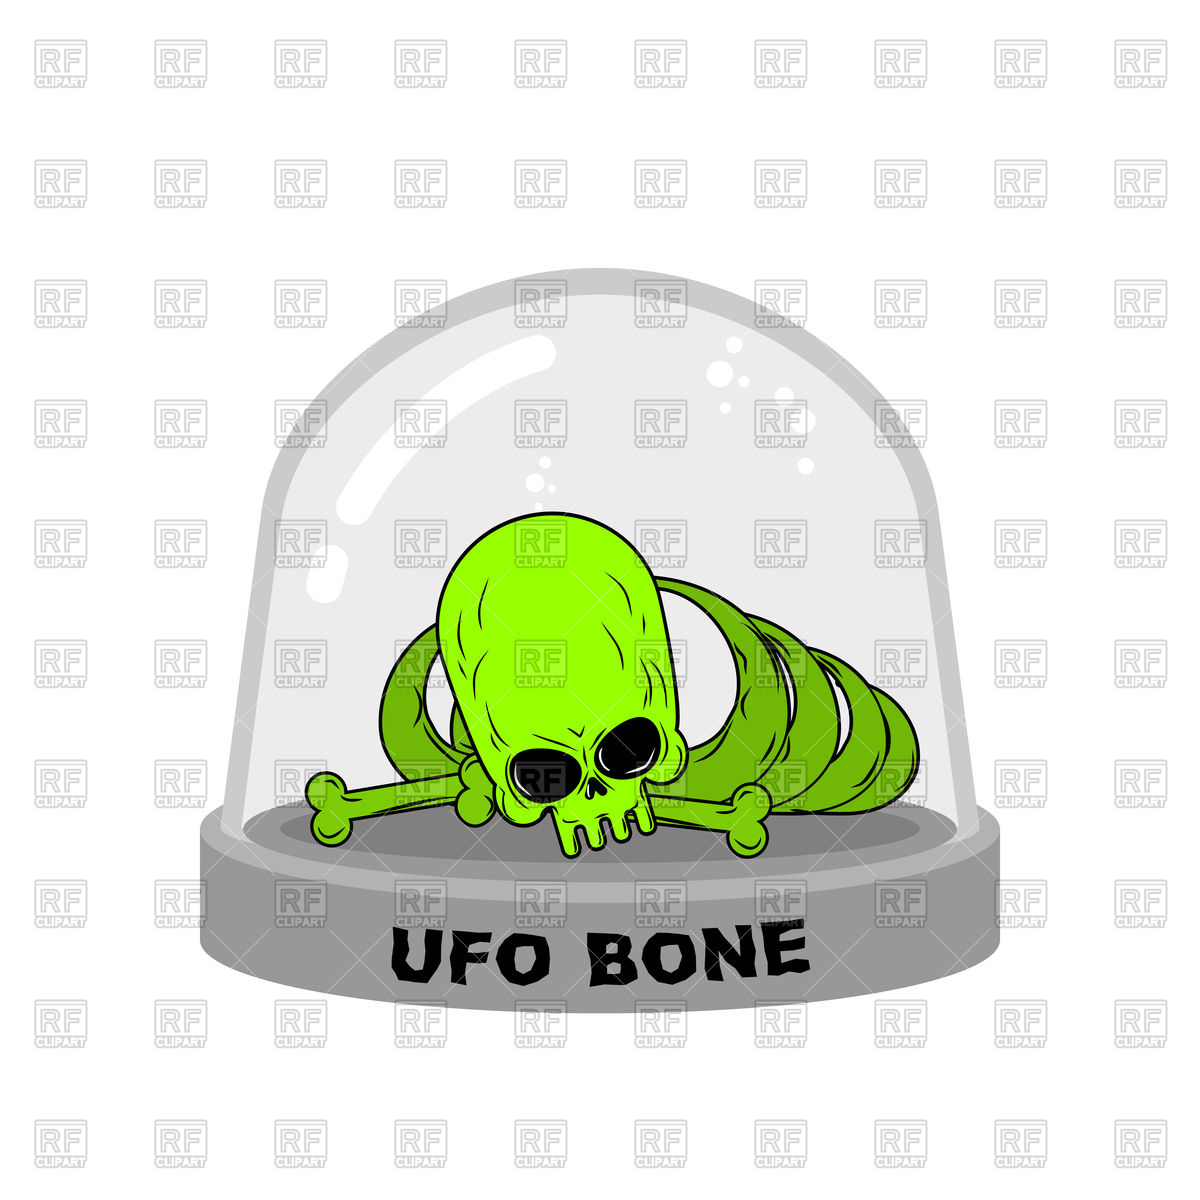 1200x1200 Ufo Green Bones In Glass Bell, Skull Of Alien Vector Image